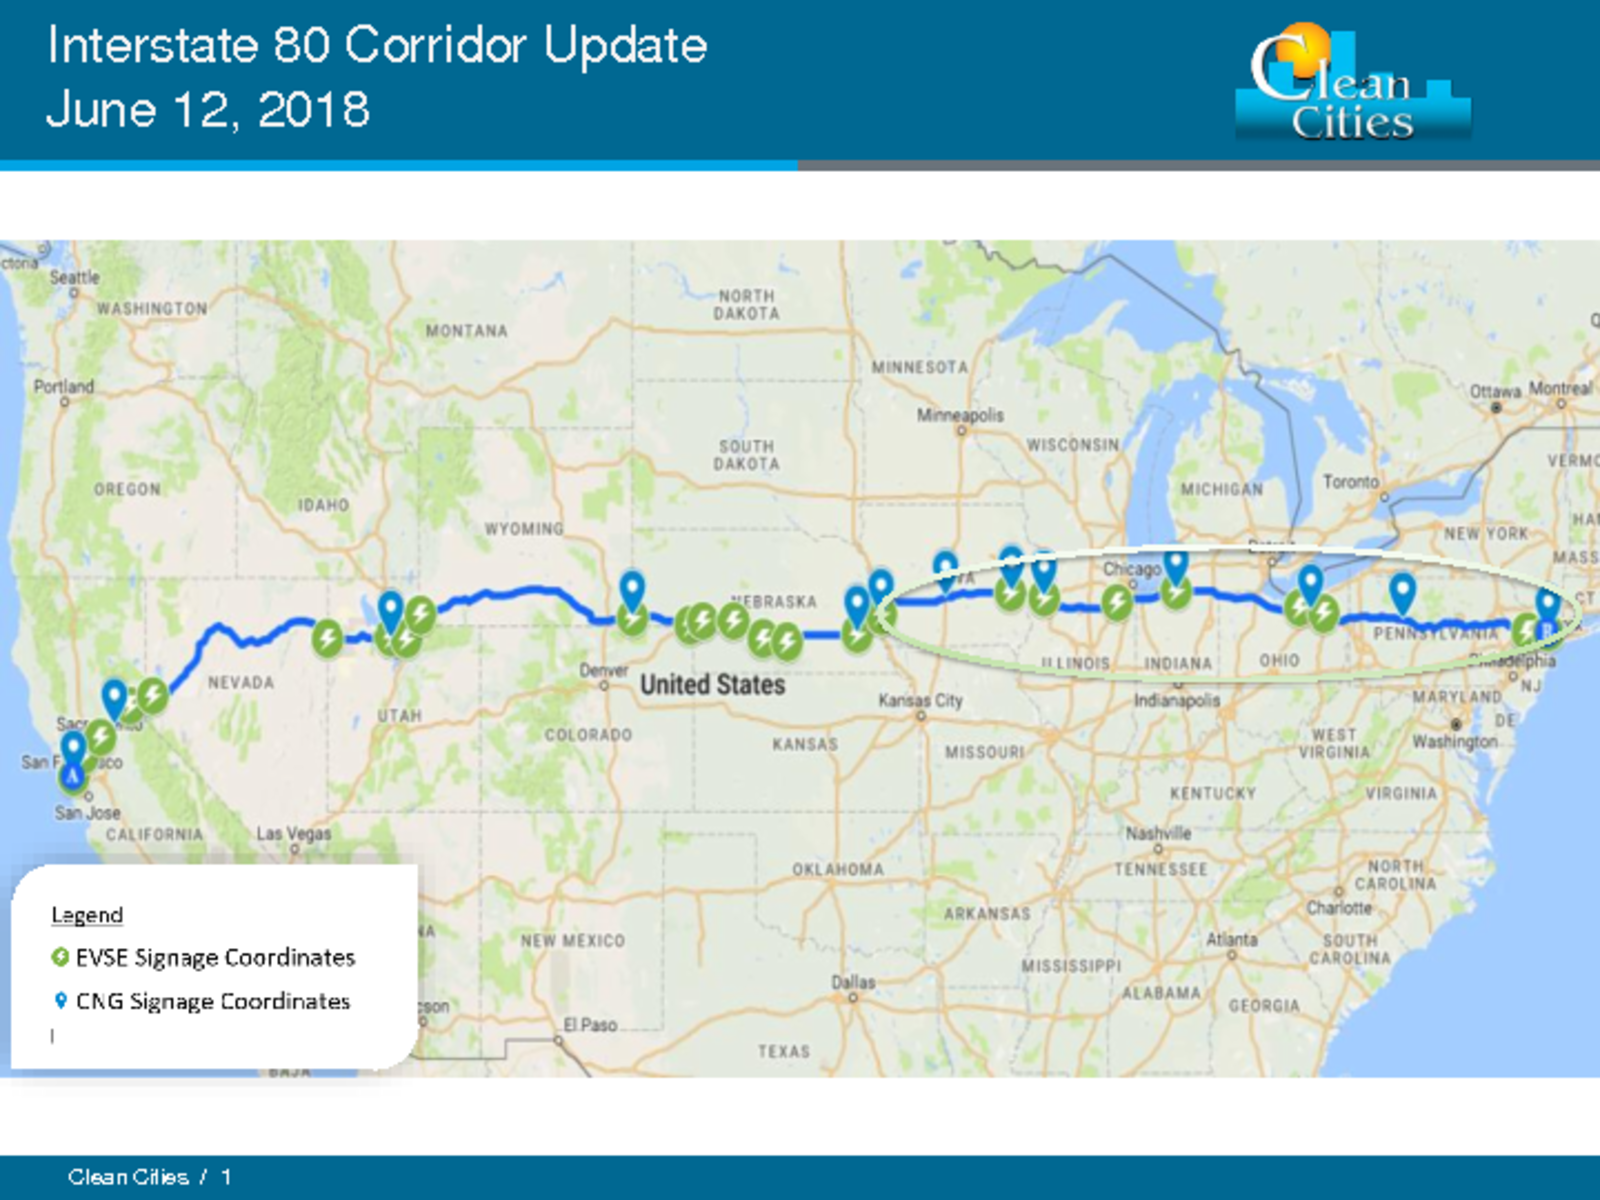 thumbnail of 1 – I-80 Clean Cities corridor update 6.12.18